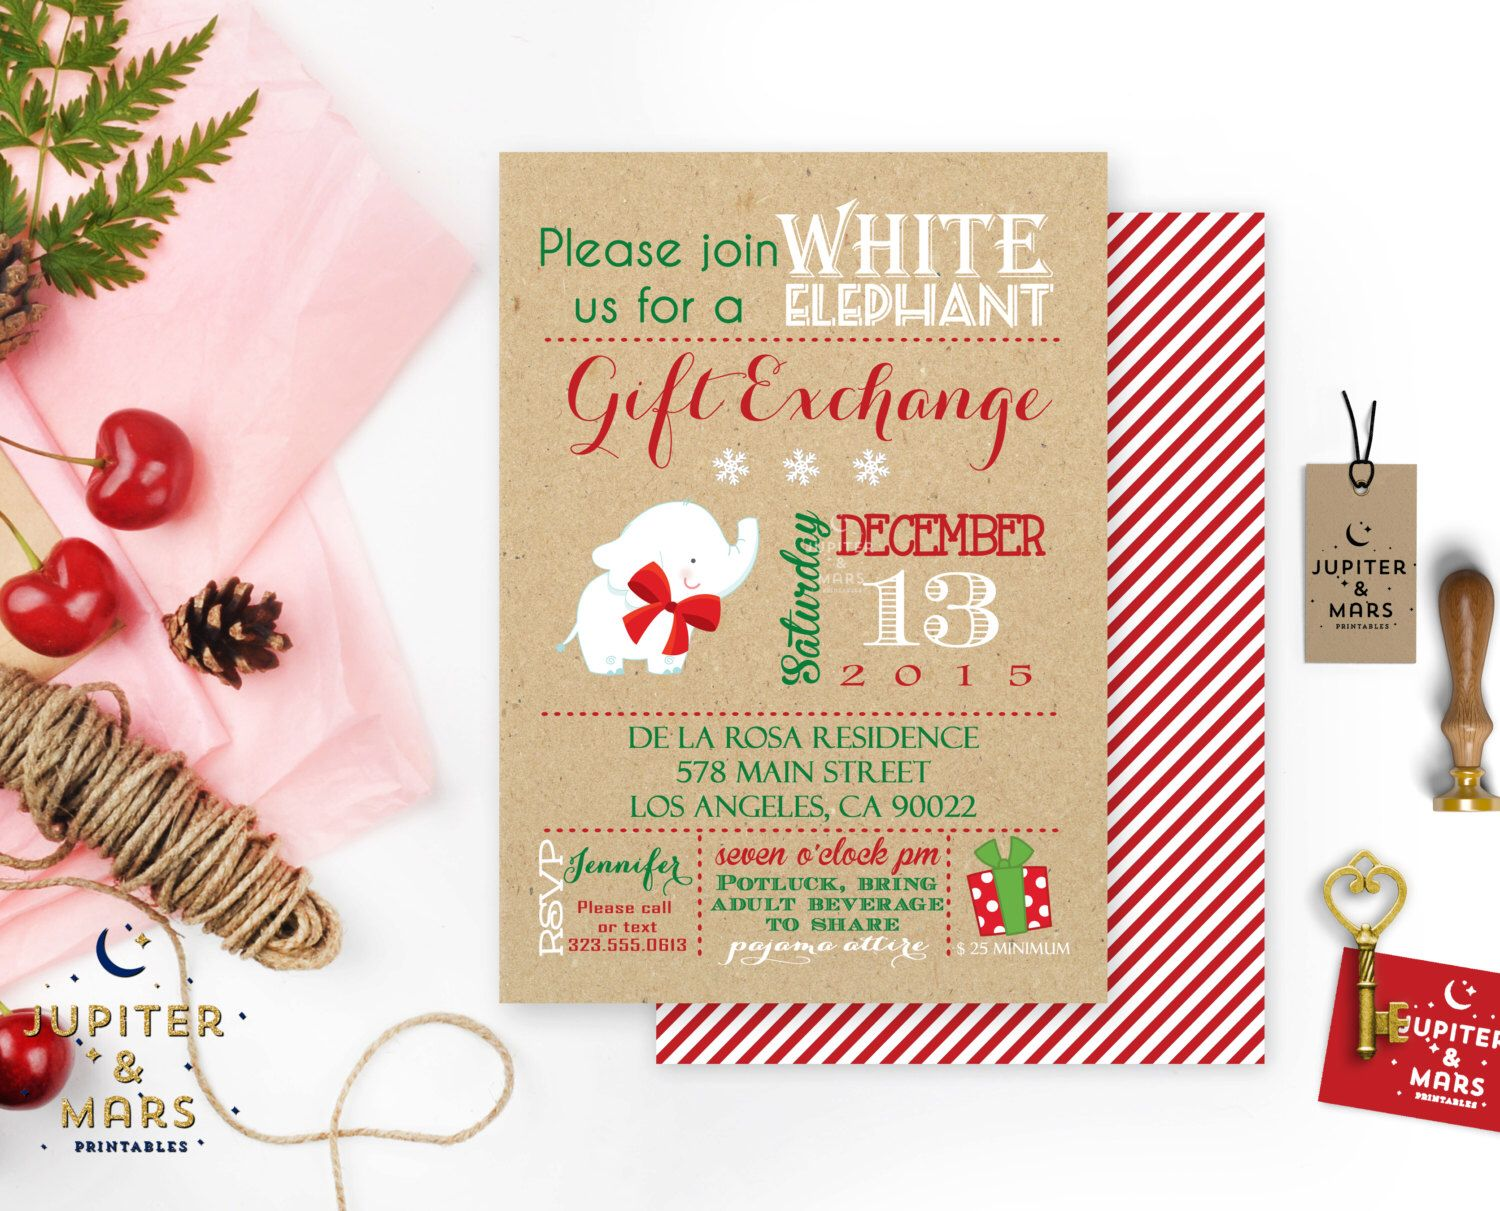 merry and bright white elephant gift exchange/holiday party, Party invitations